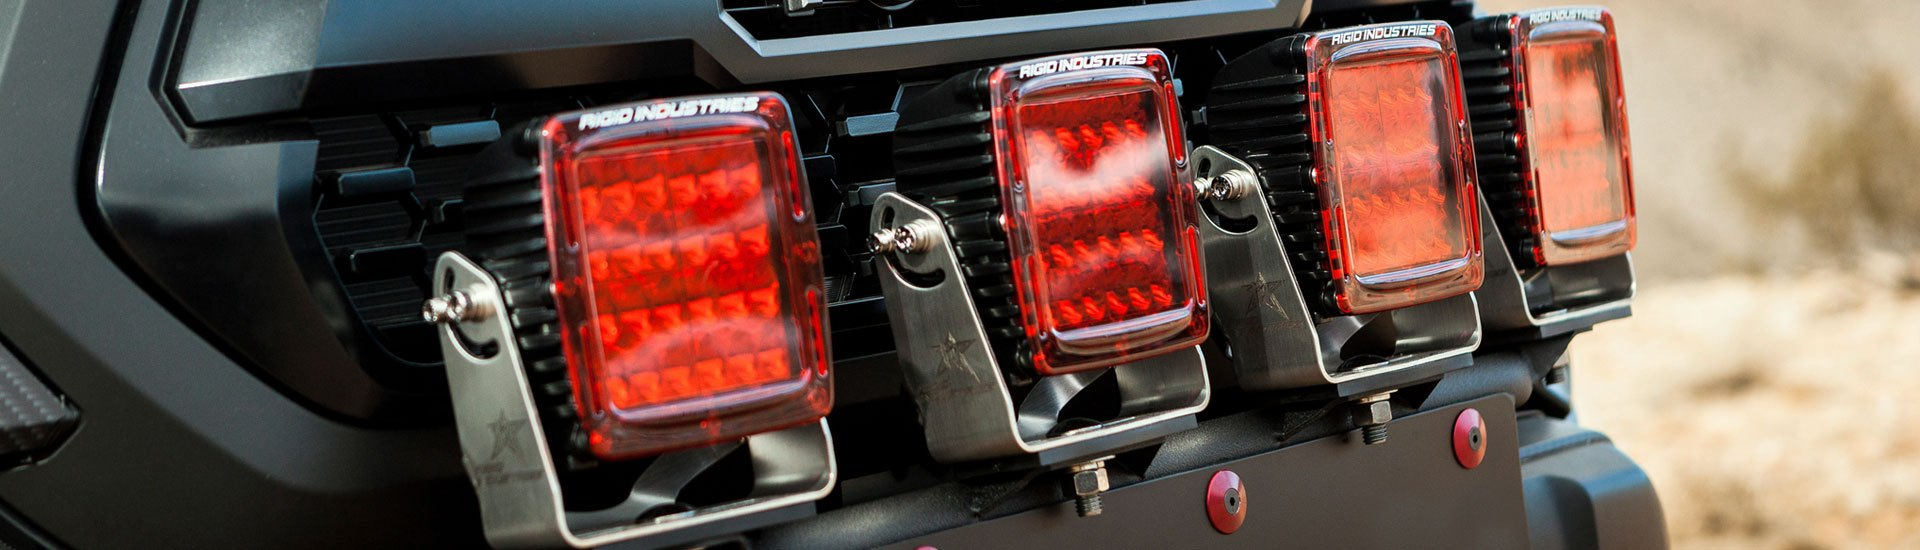 Off Road Lights Led Hid Fog Driving Light Bars Two Way Switch Red Wire